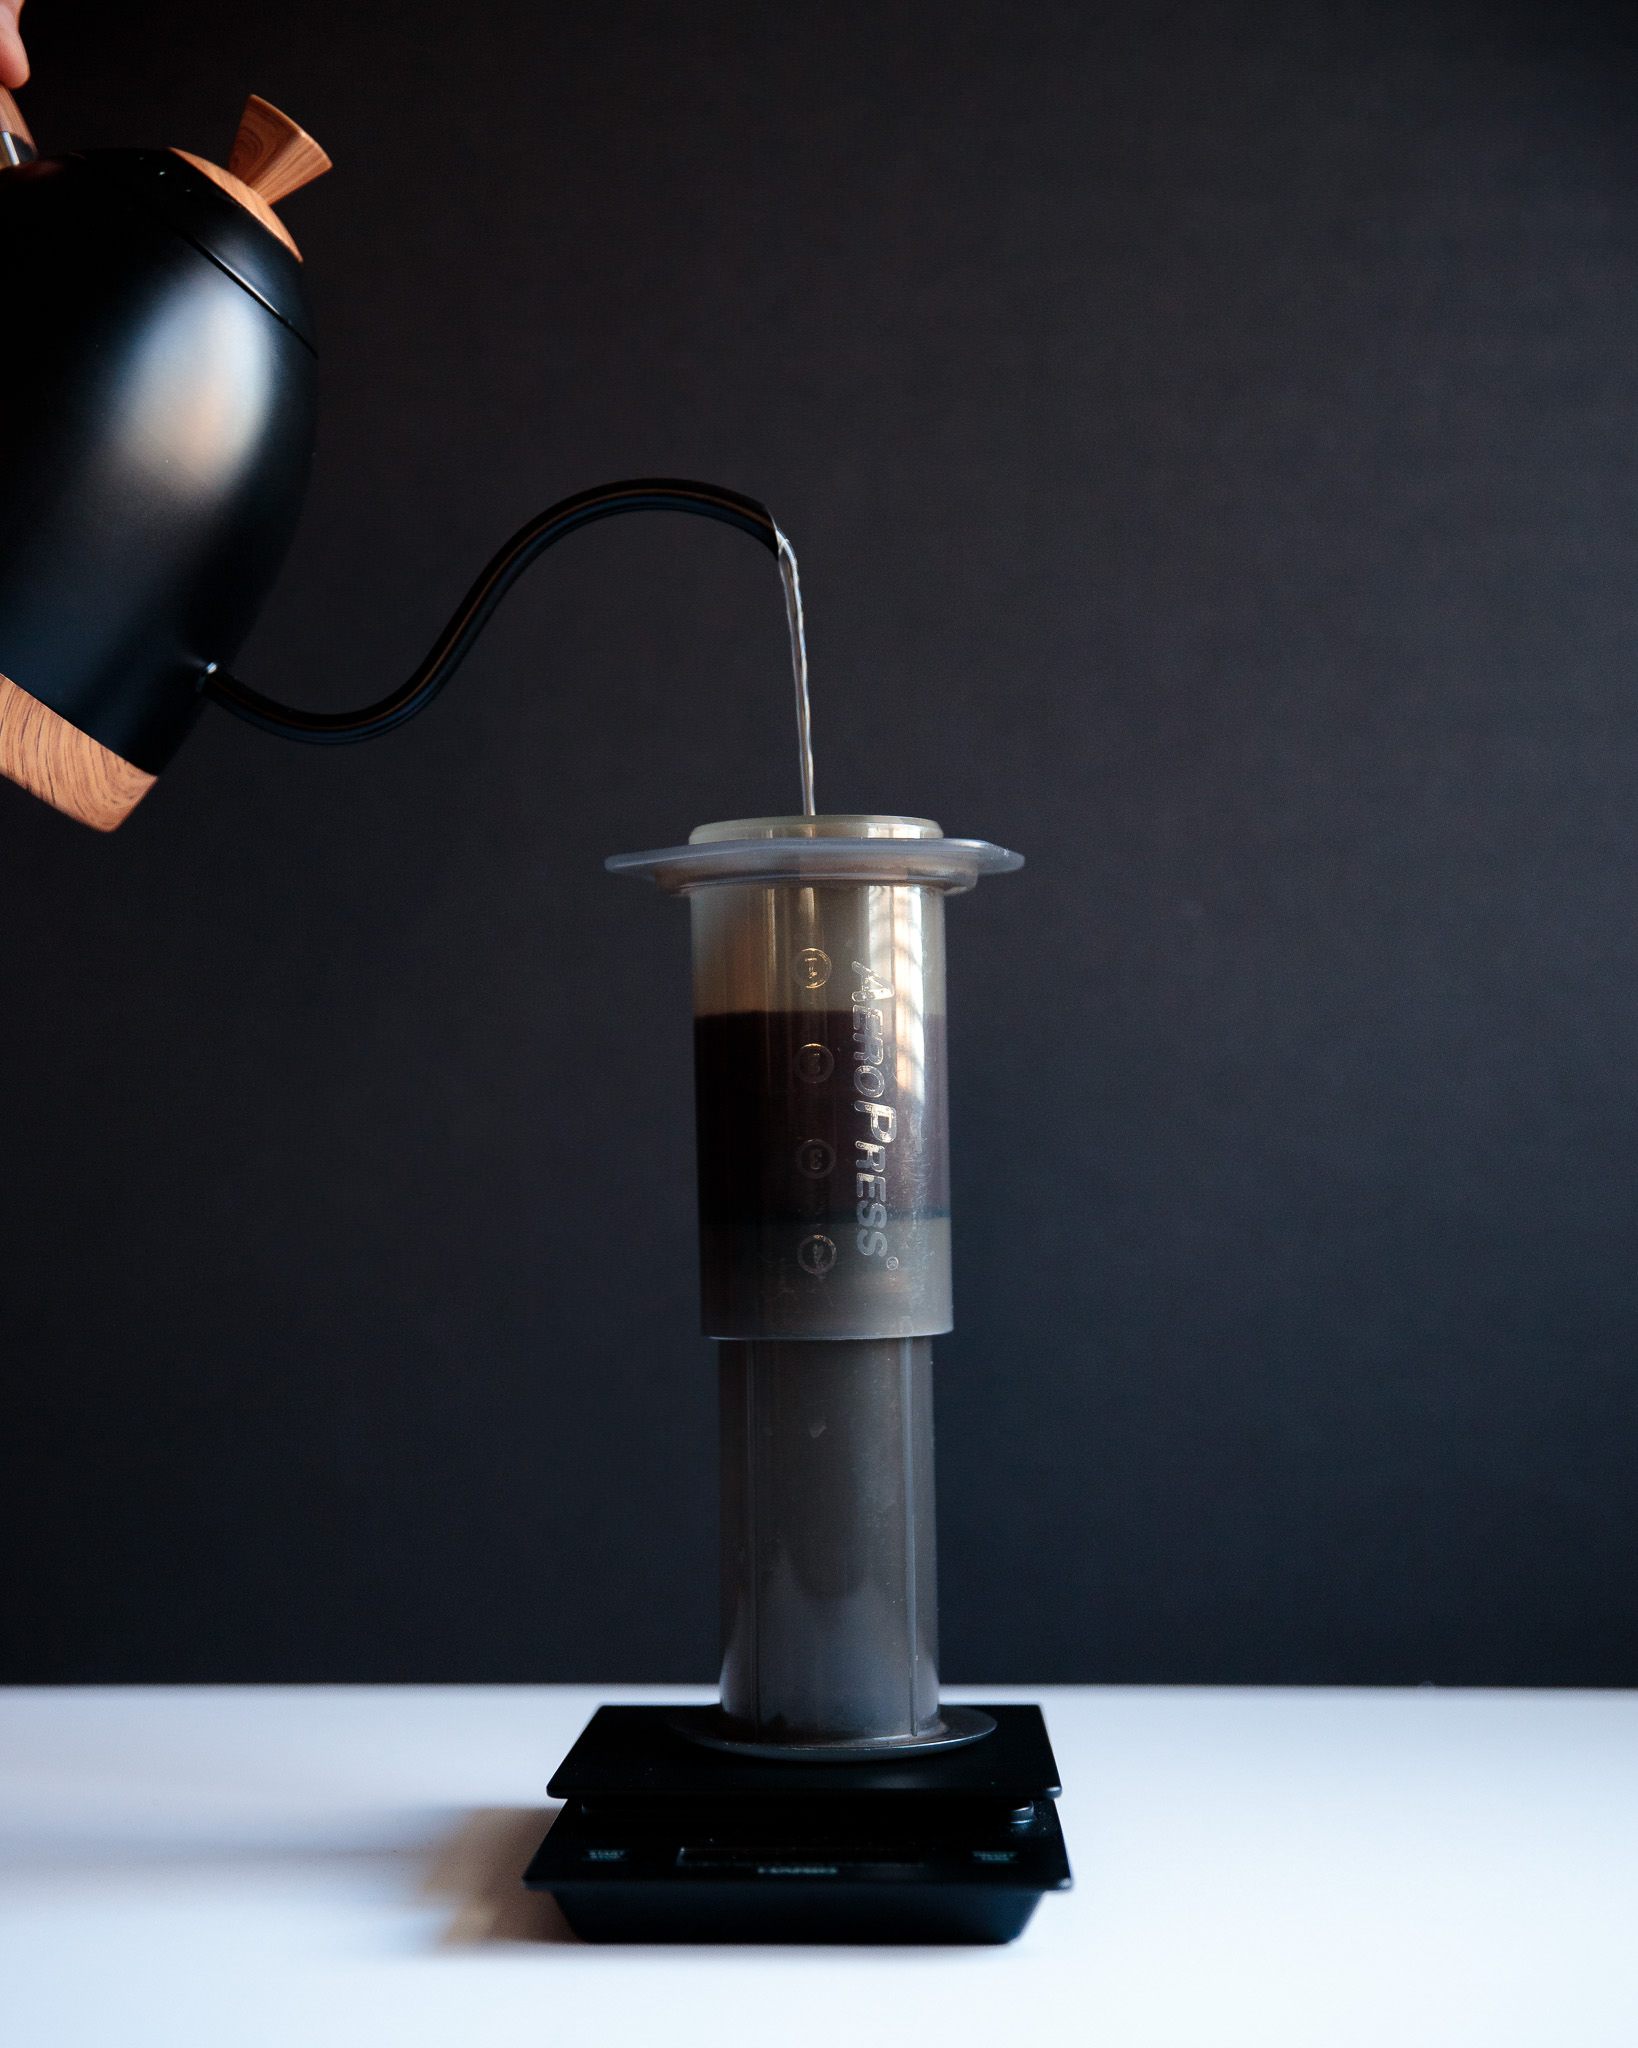 Brewing dark roasted coffee with an inverted Aeropress